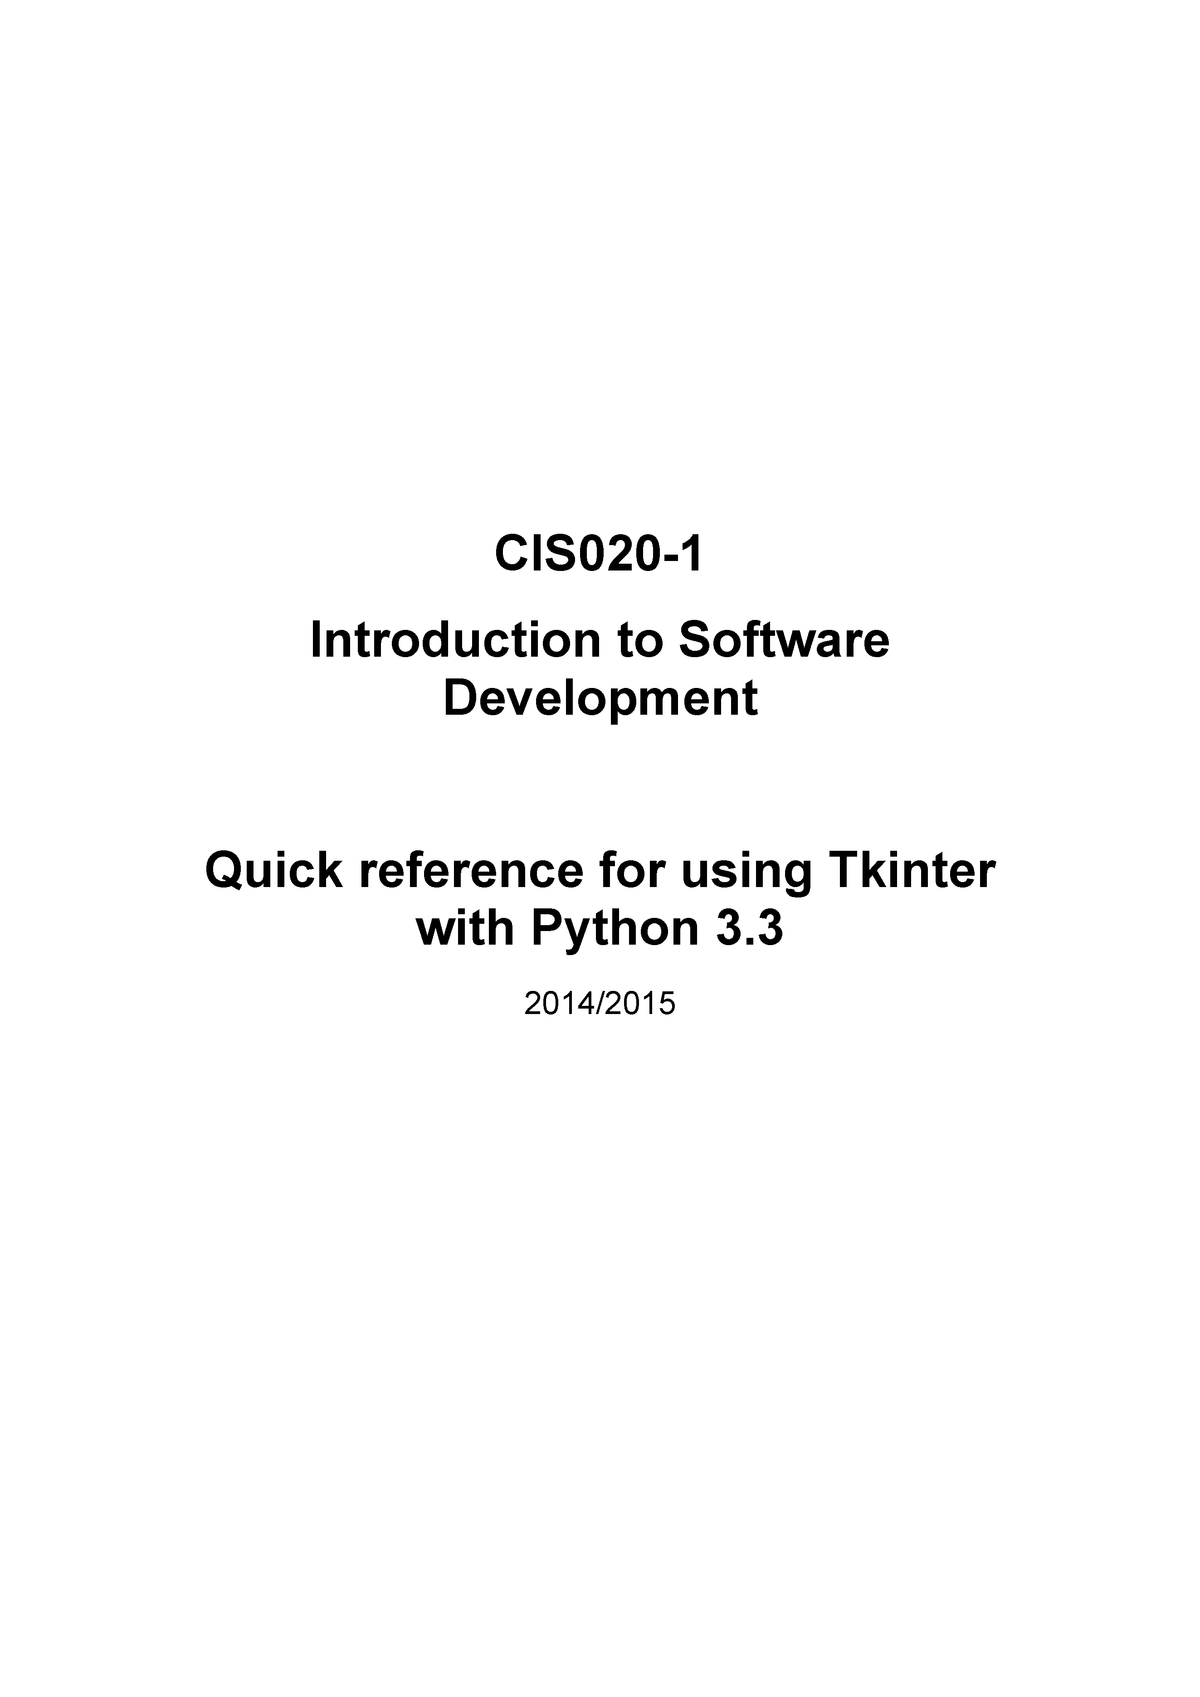 Python tkinter guide - CIS020-1/Ltn/FY: Introduction To